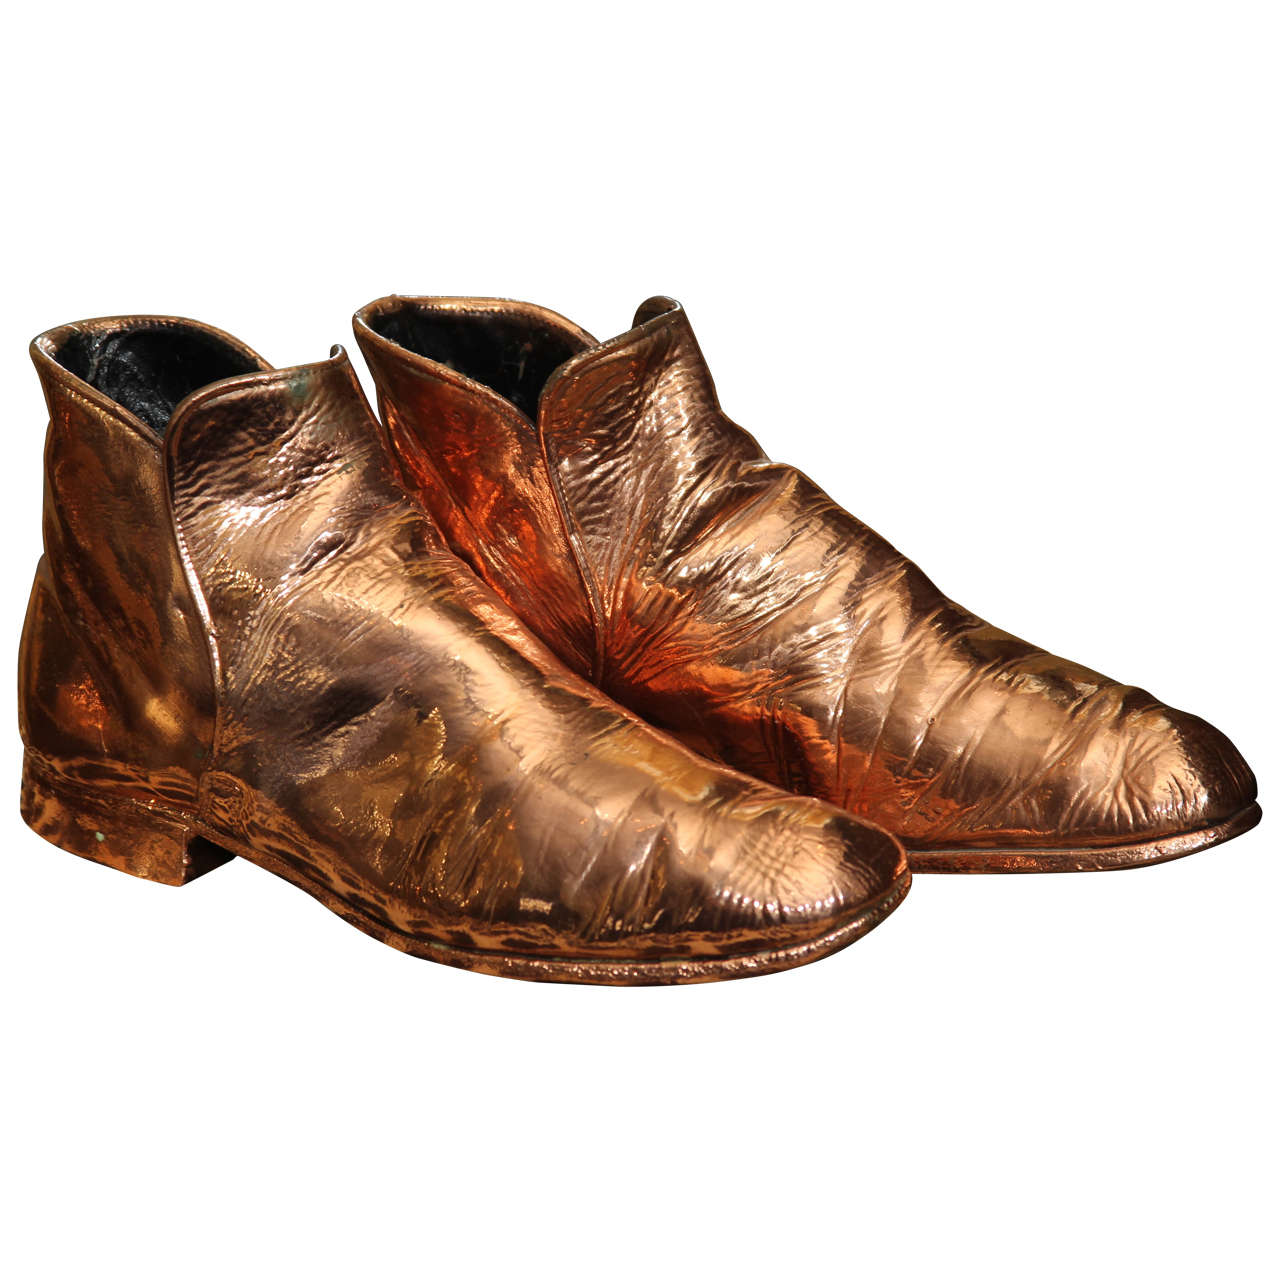 Copper Boots For Sale